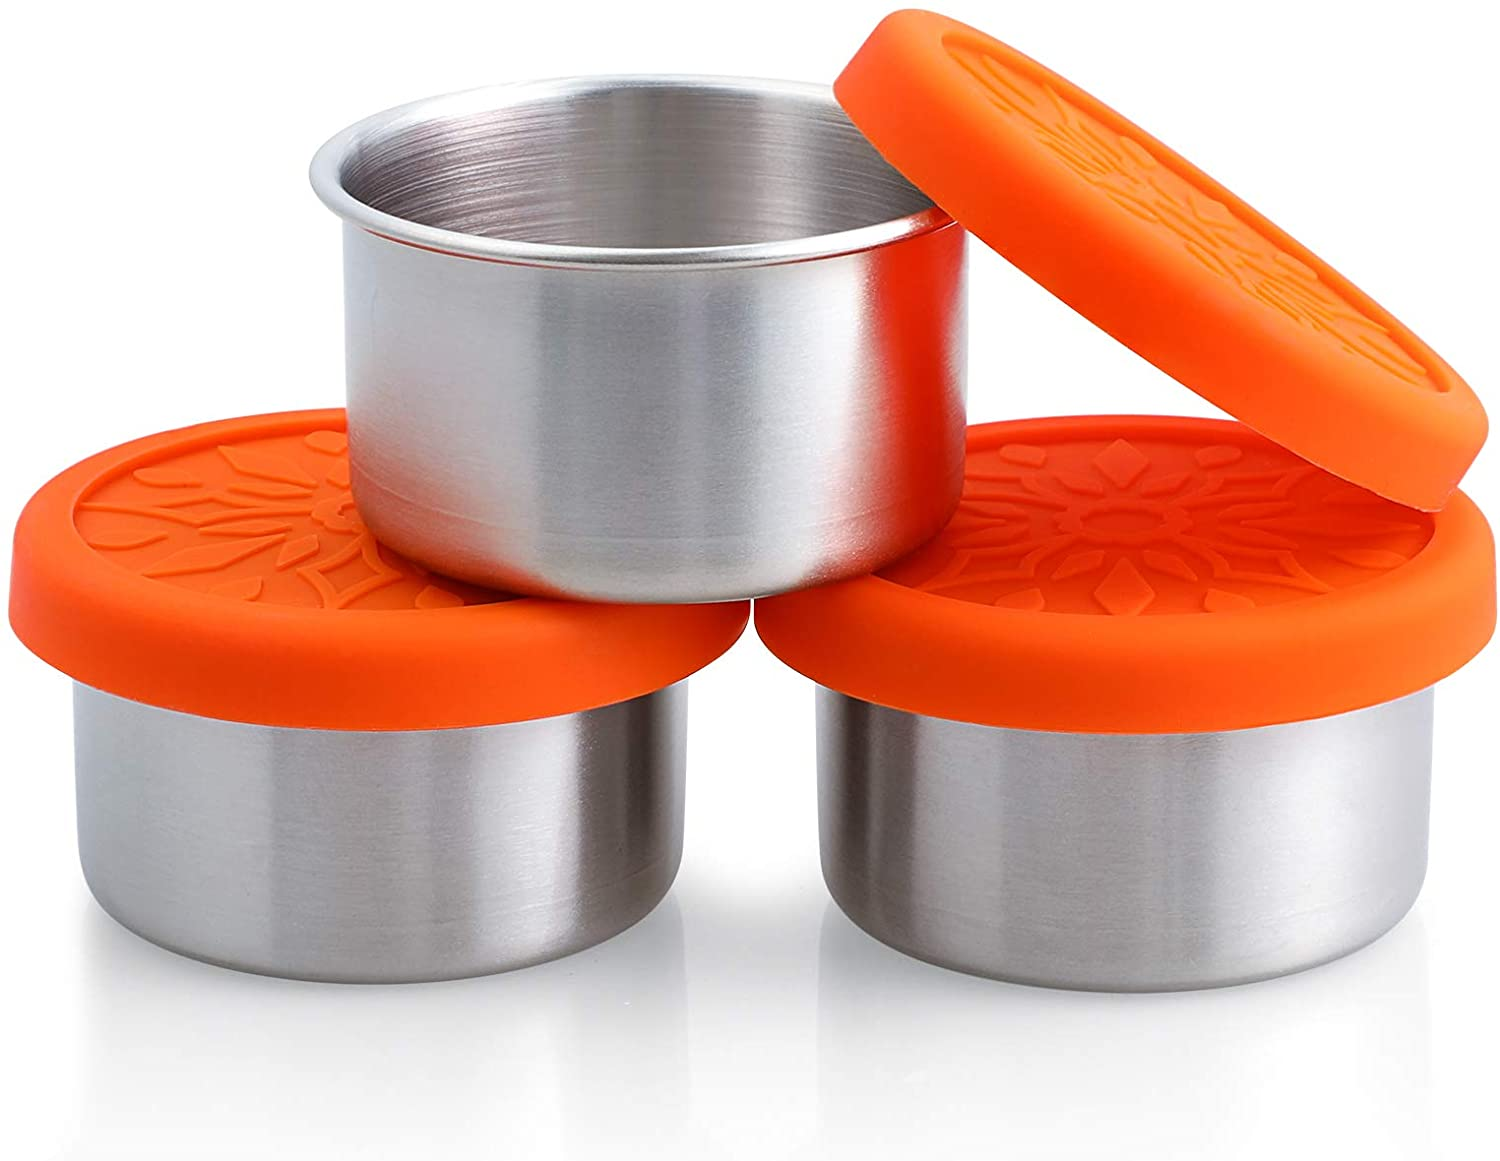 SUKKI Stainless Steel Condiment Containers - 3 x 3.4oz Salad Dressing Containers with Food Grade and Leakproof Silicone Lids - for Snacks, Desserts, Souffle, Baby Food